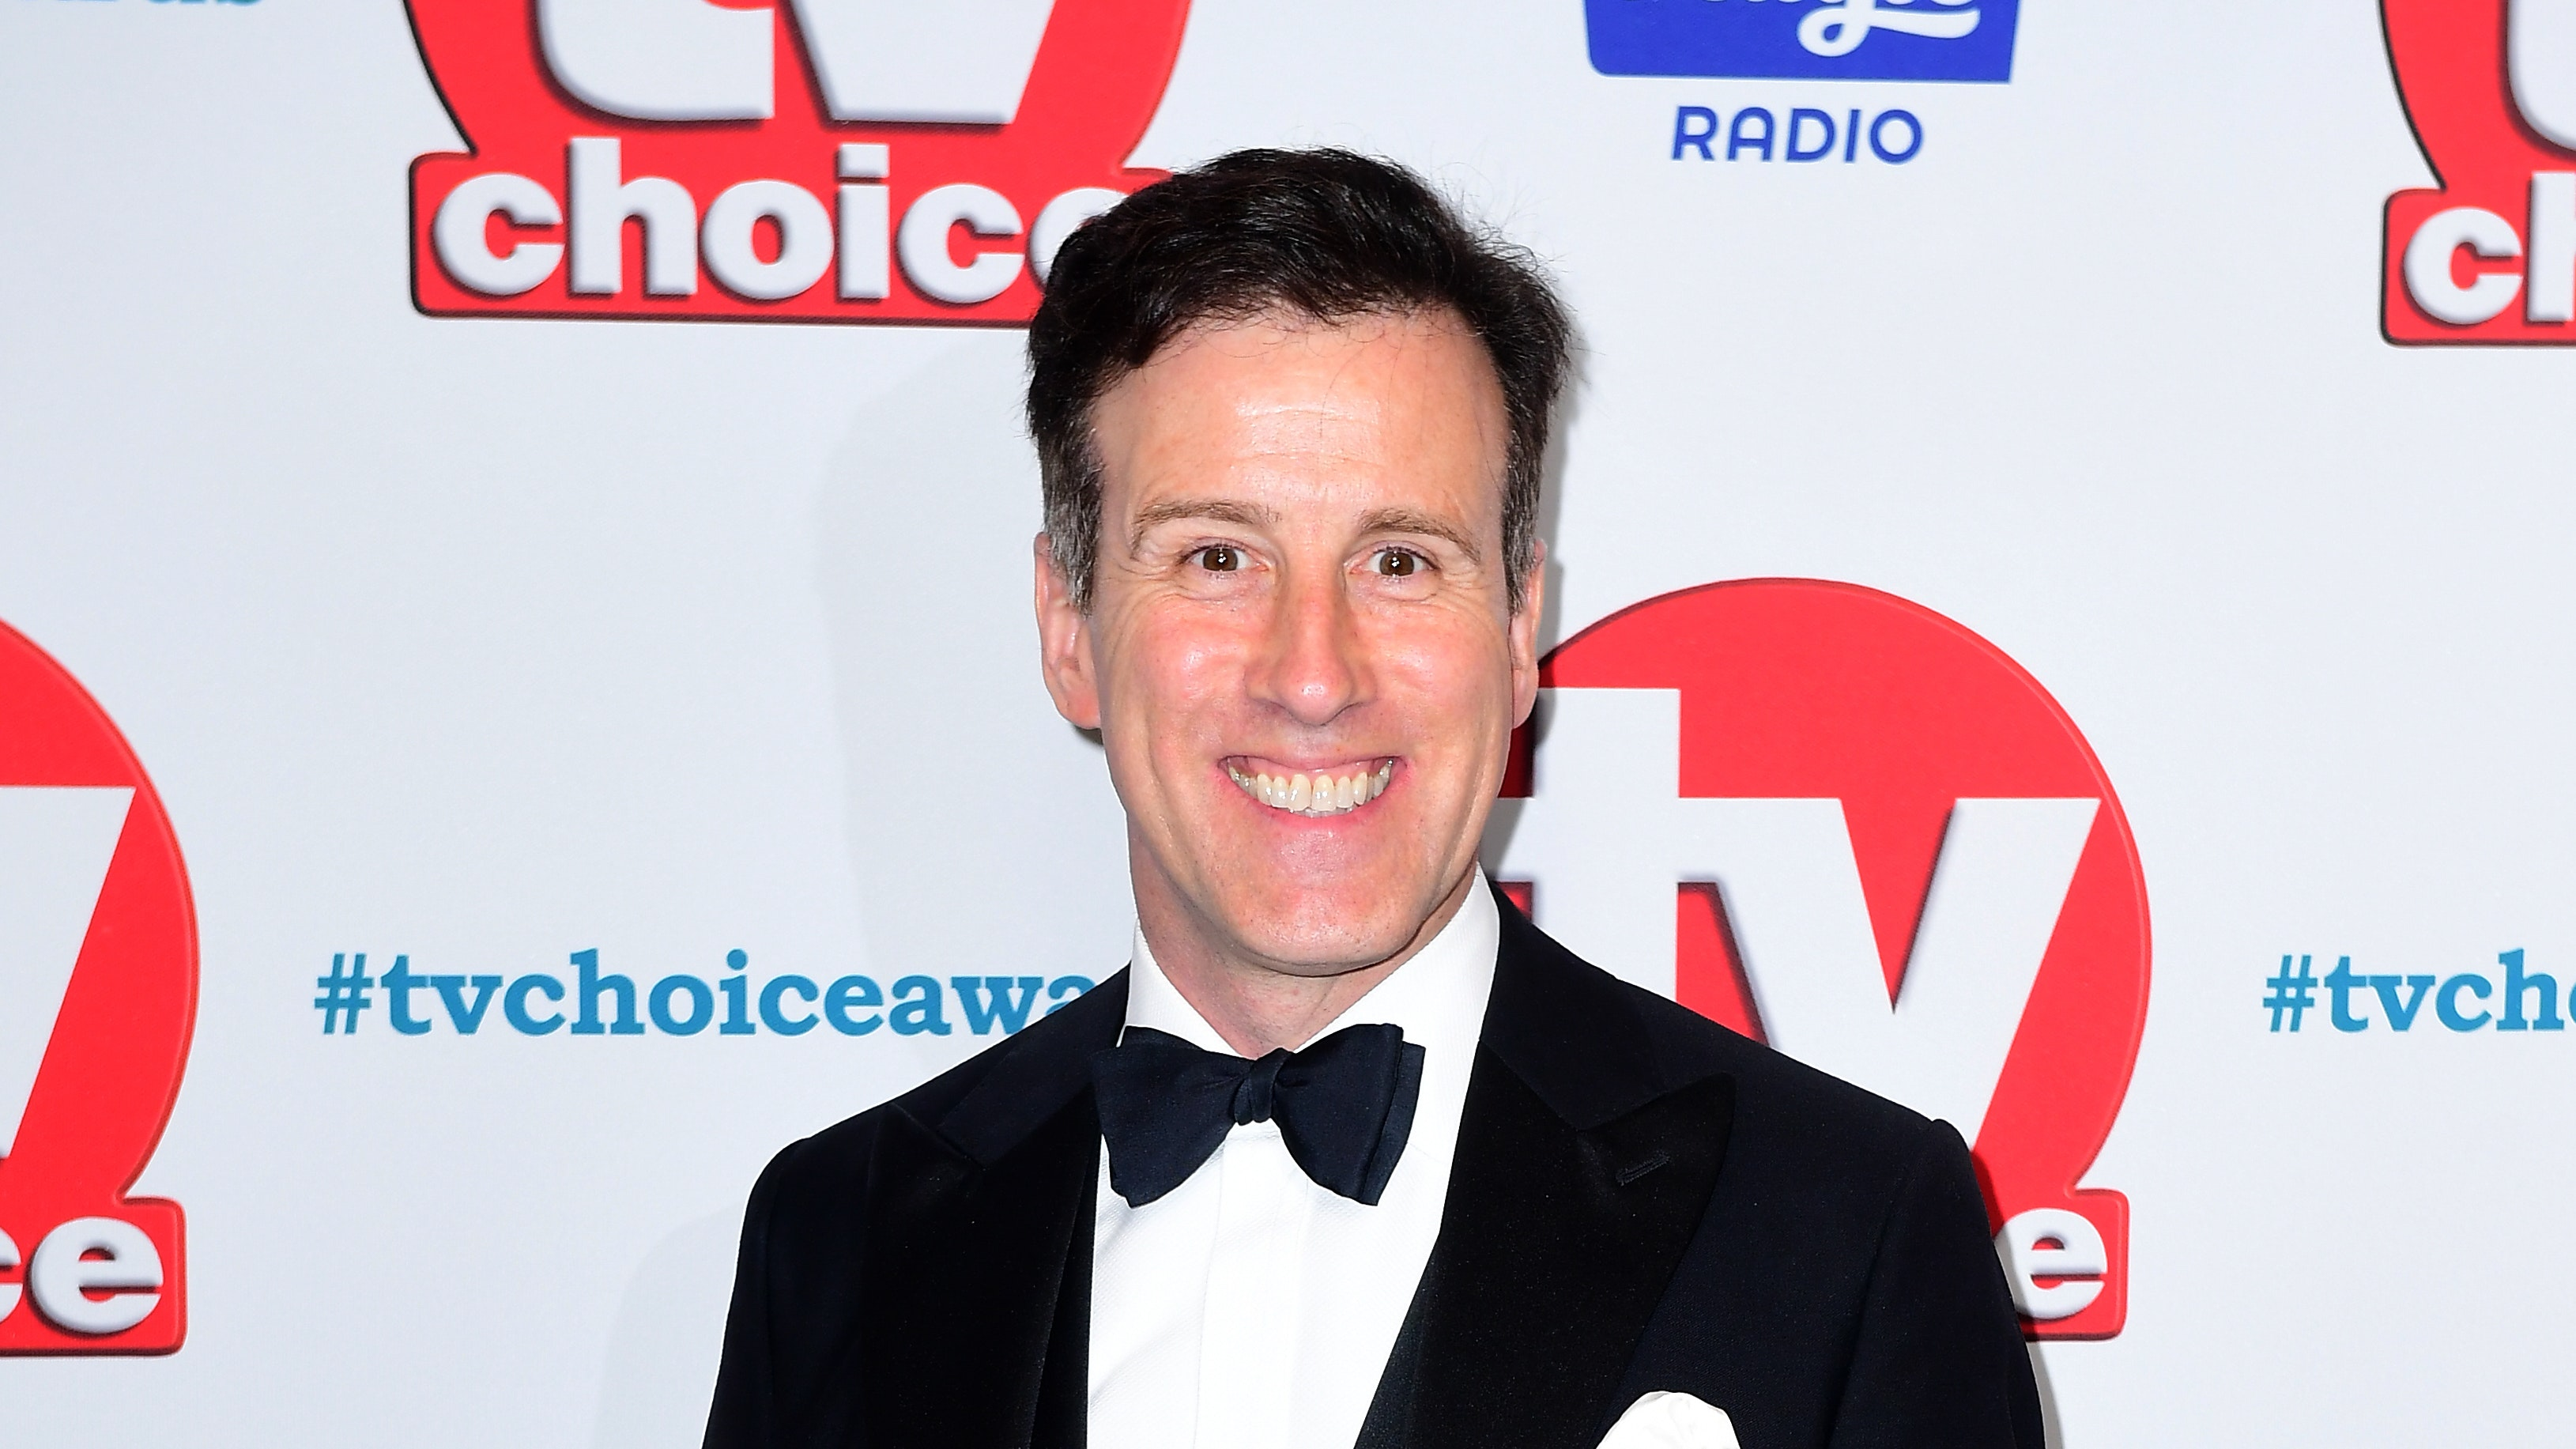 Anton du Beke 'favourite to replace Darcey Bussell on Strictly' class=